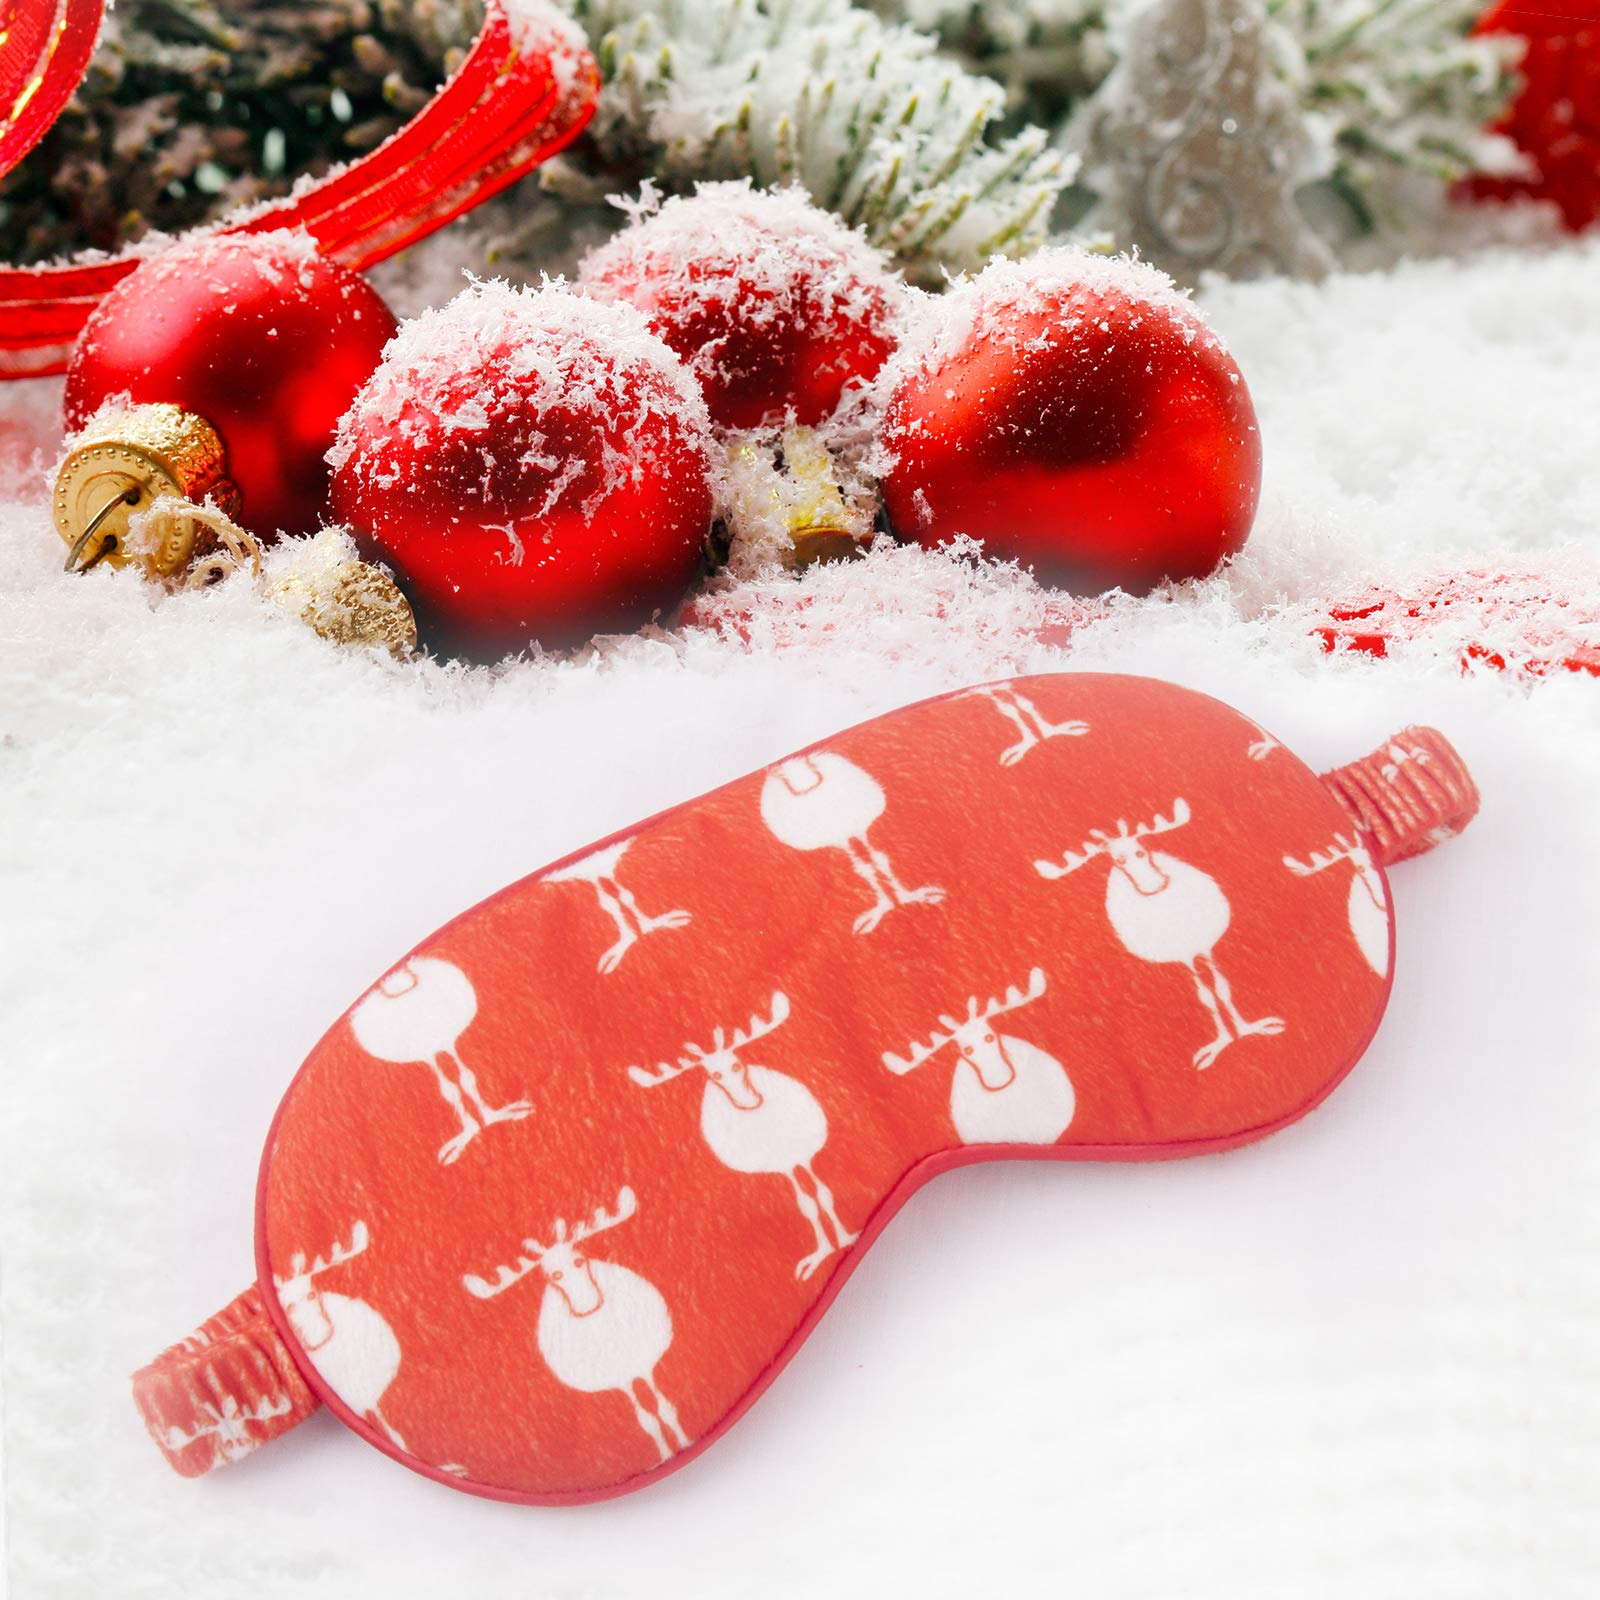 Moonen Christmas Gift Sleep Mask Eye Shade Santa Deer Soft for Women and Men with Adjustable Strap Super-Smooth Blocks Light Suitable for Travel Nap and Deep Sleep (Red)